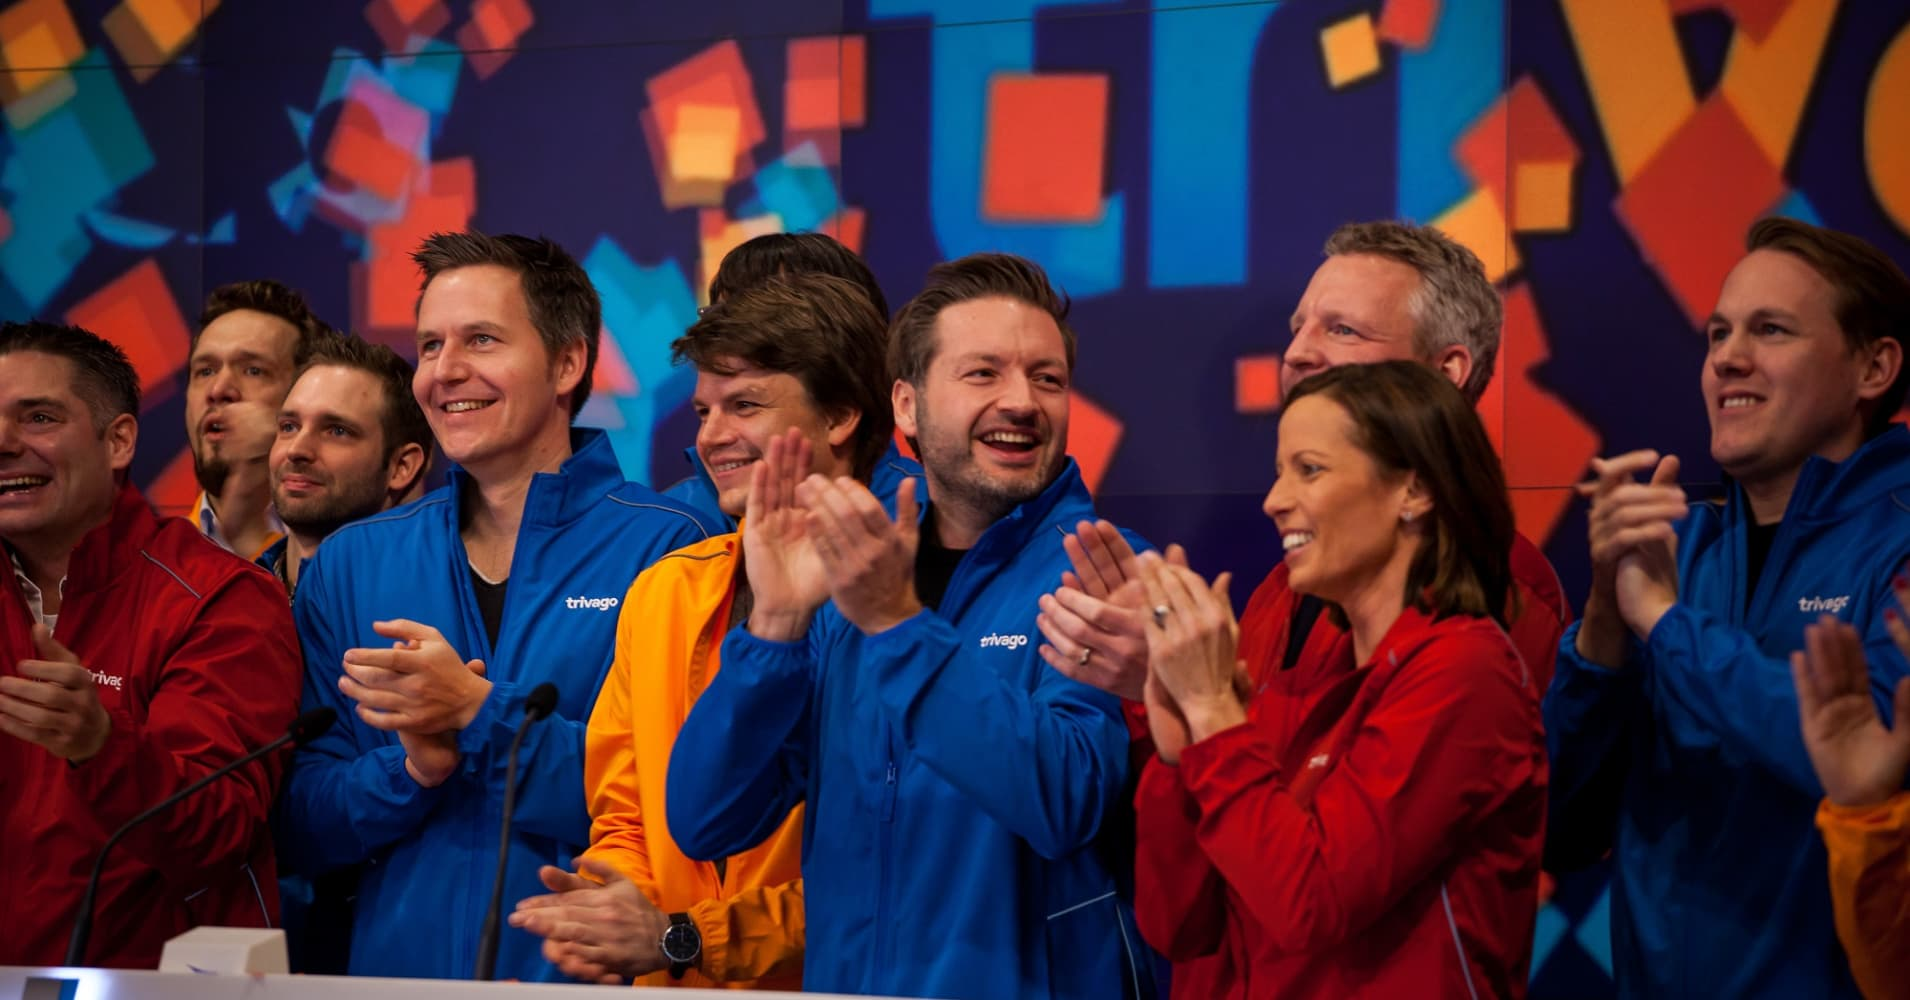 Rolf Schroemgens, co-founder and chief executive officer of Trivago GmbH, center, and employees clap during the opening bell ceremony at the Nasdaq MarketSite during the company's initial public offering.